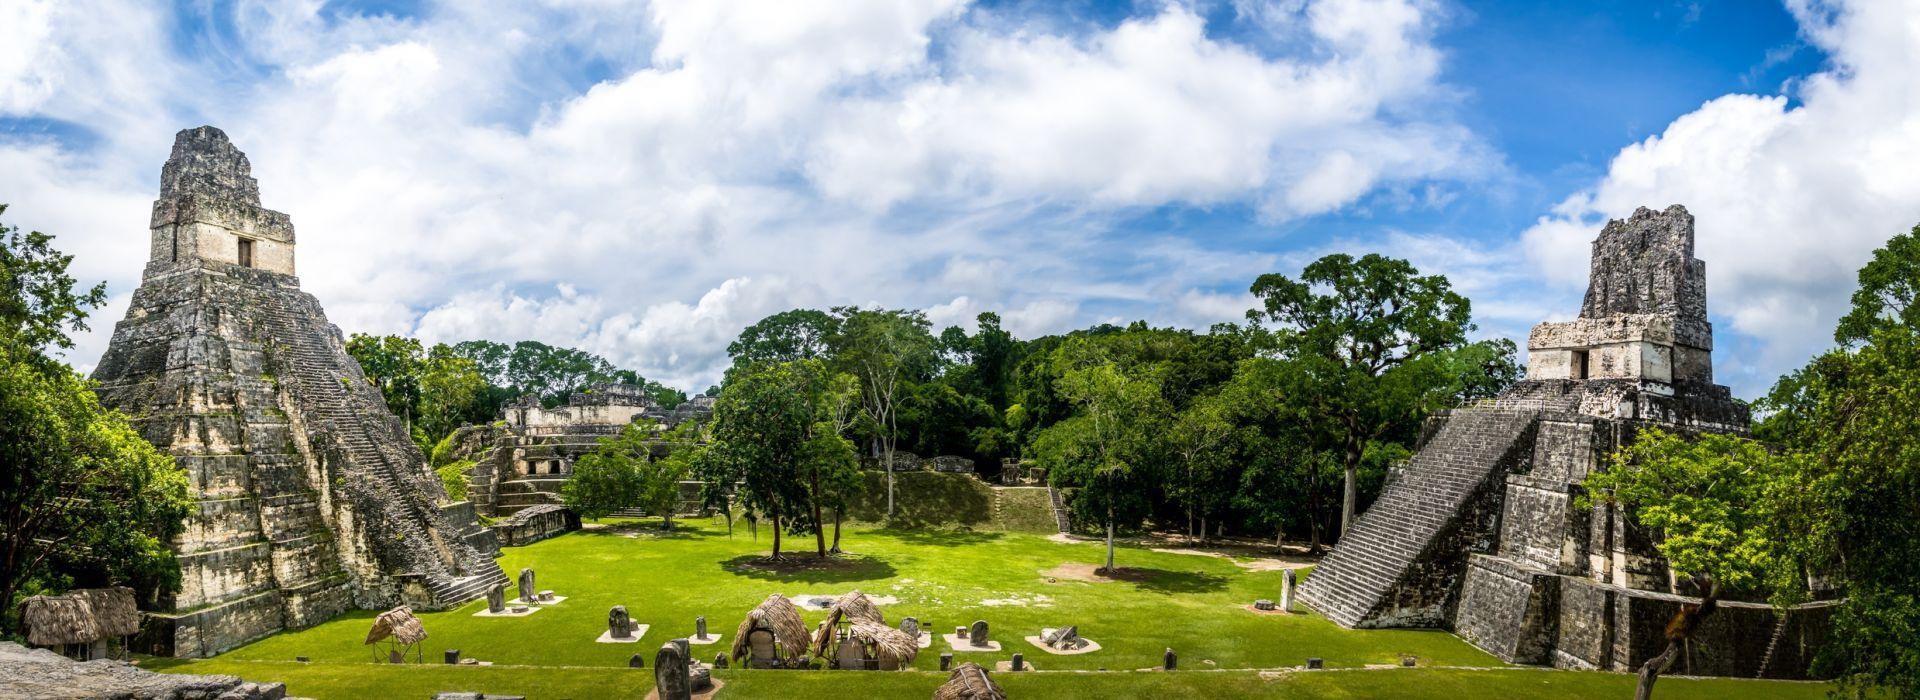 Sightseeing, attractions, culture and history Tours in Guatemala City